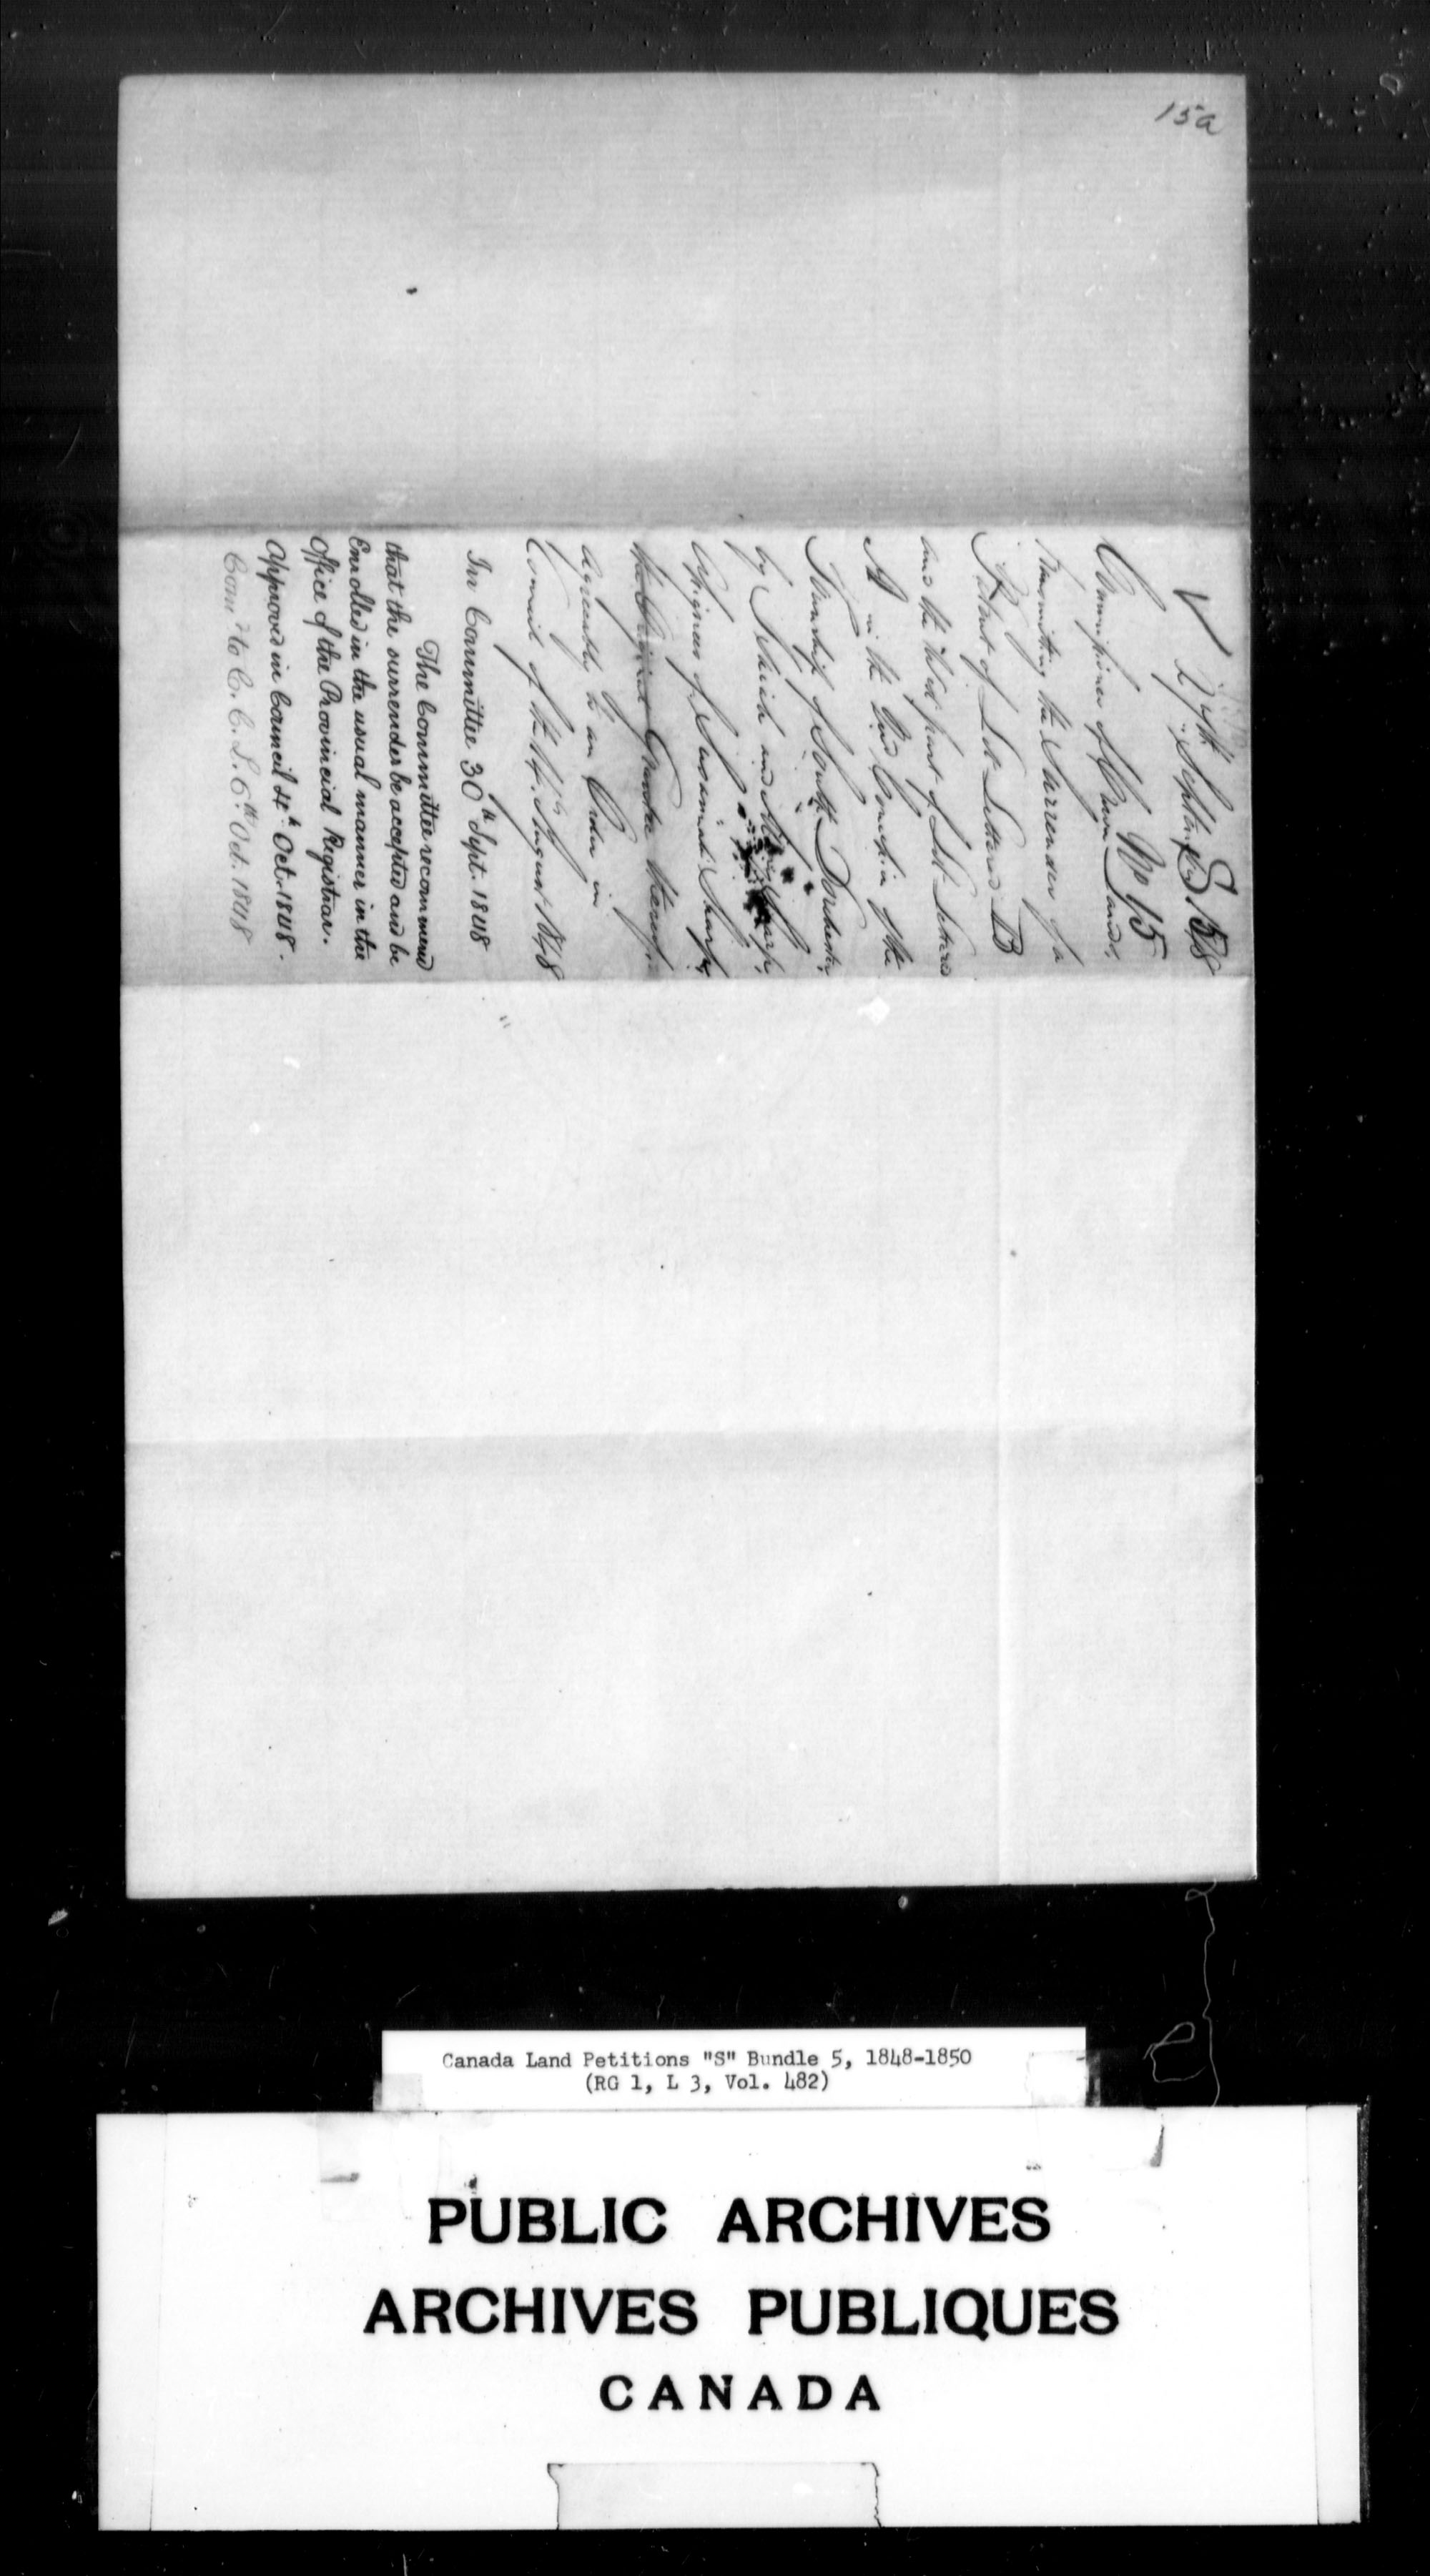 Title: Upper Canada Land Petitions (1763-1865) - Mikan Number: 205131 - Microform: c-2825